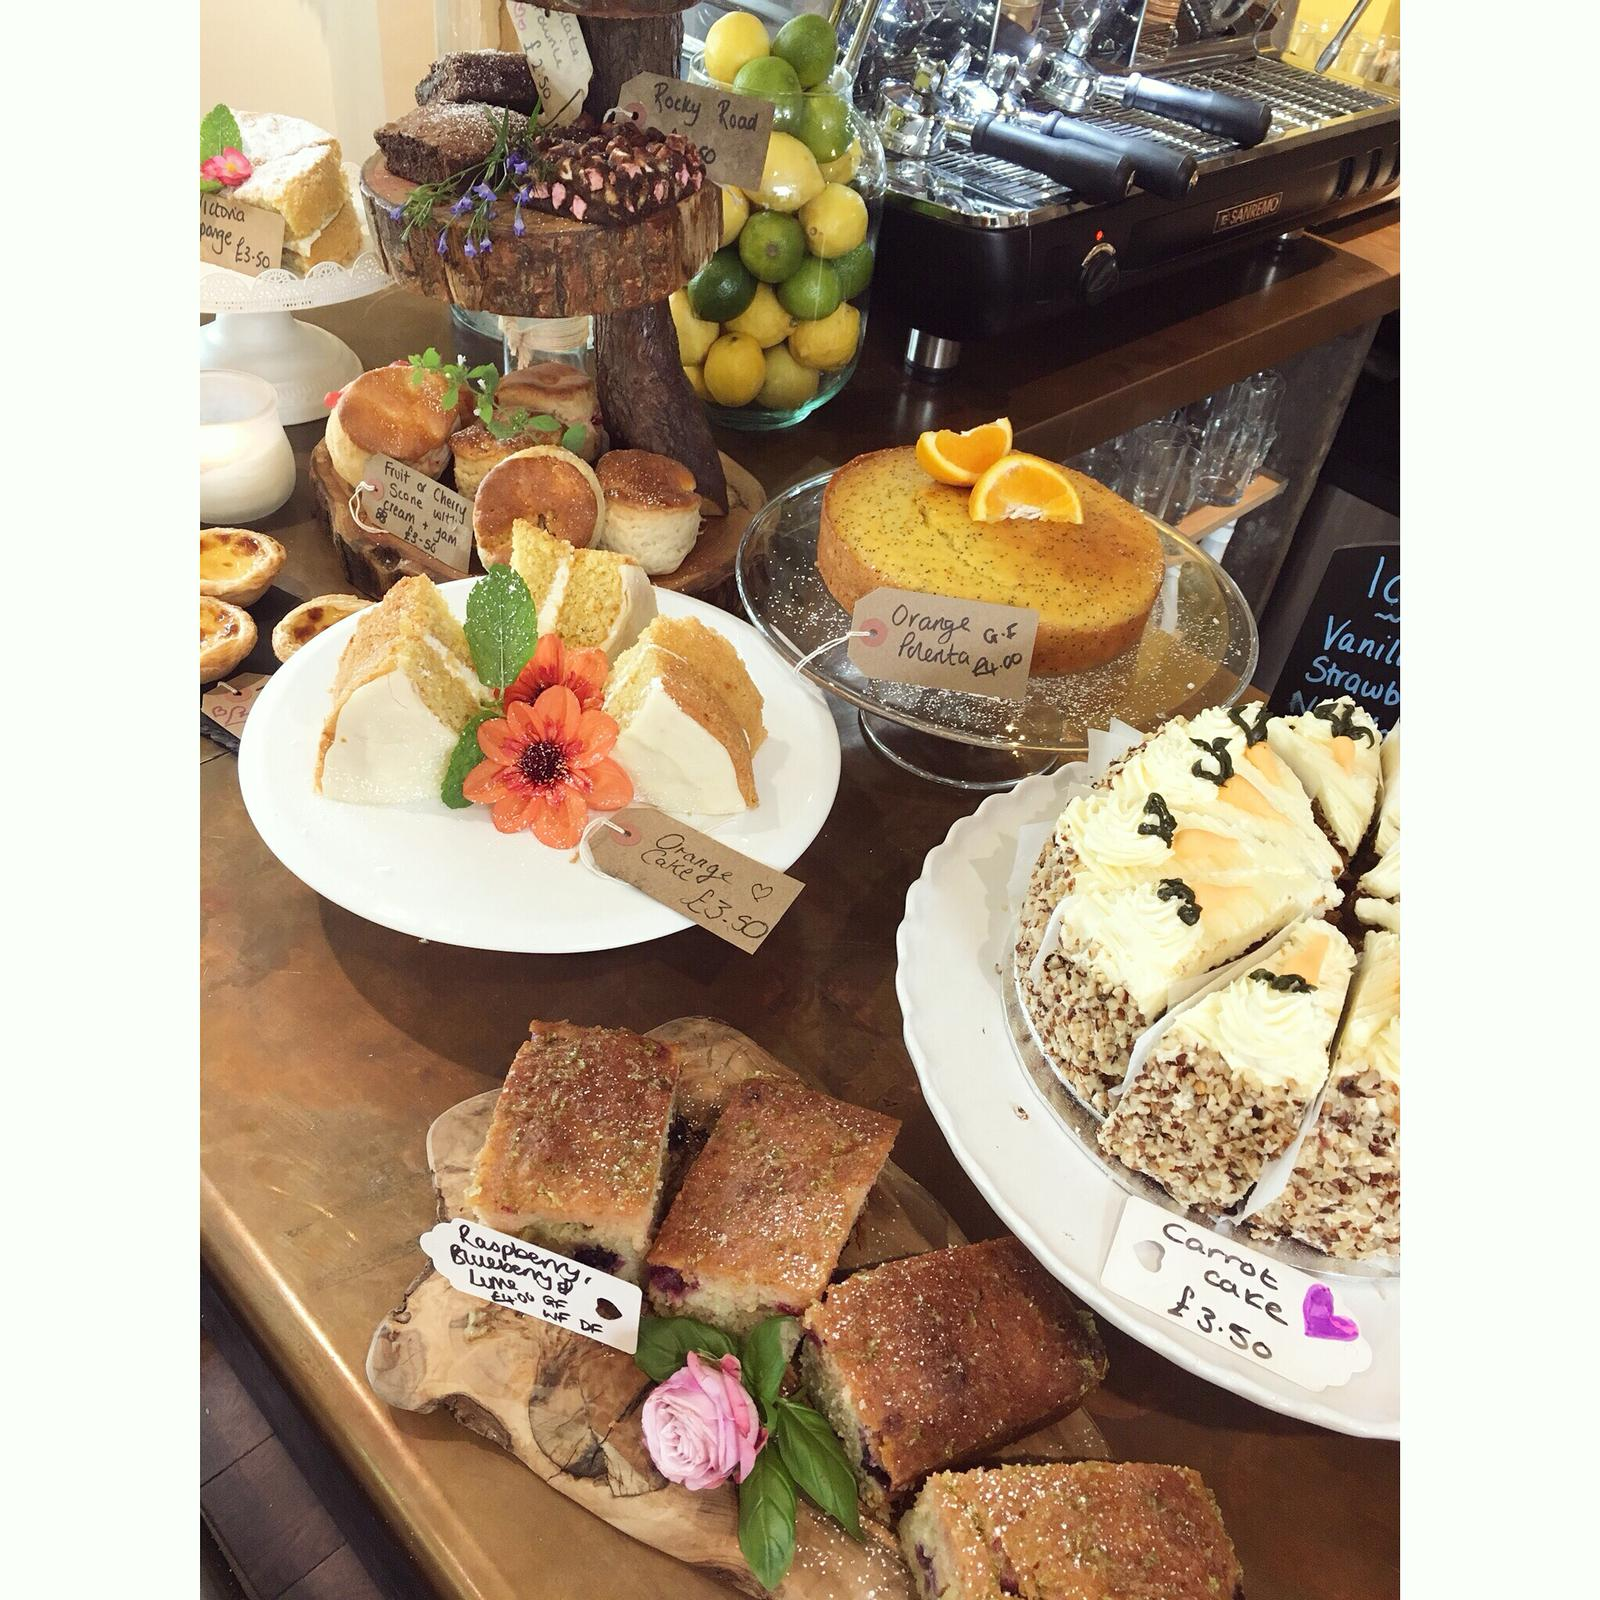 Homemade Cakes at Spring Cottage Cafe